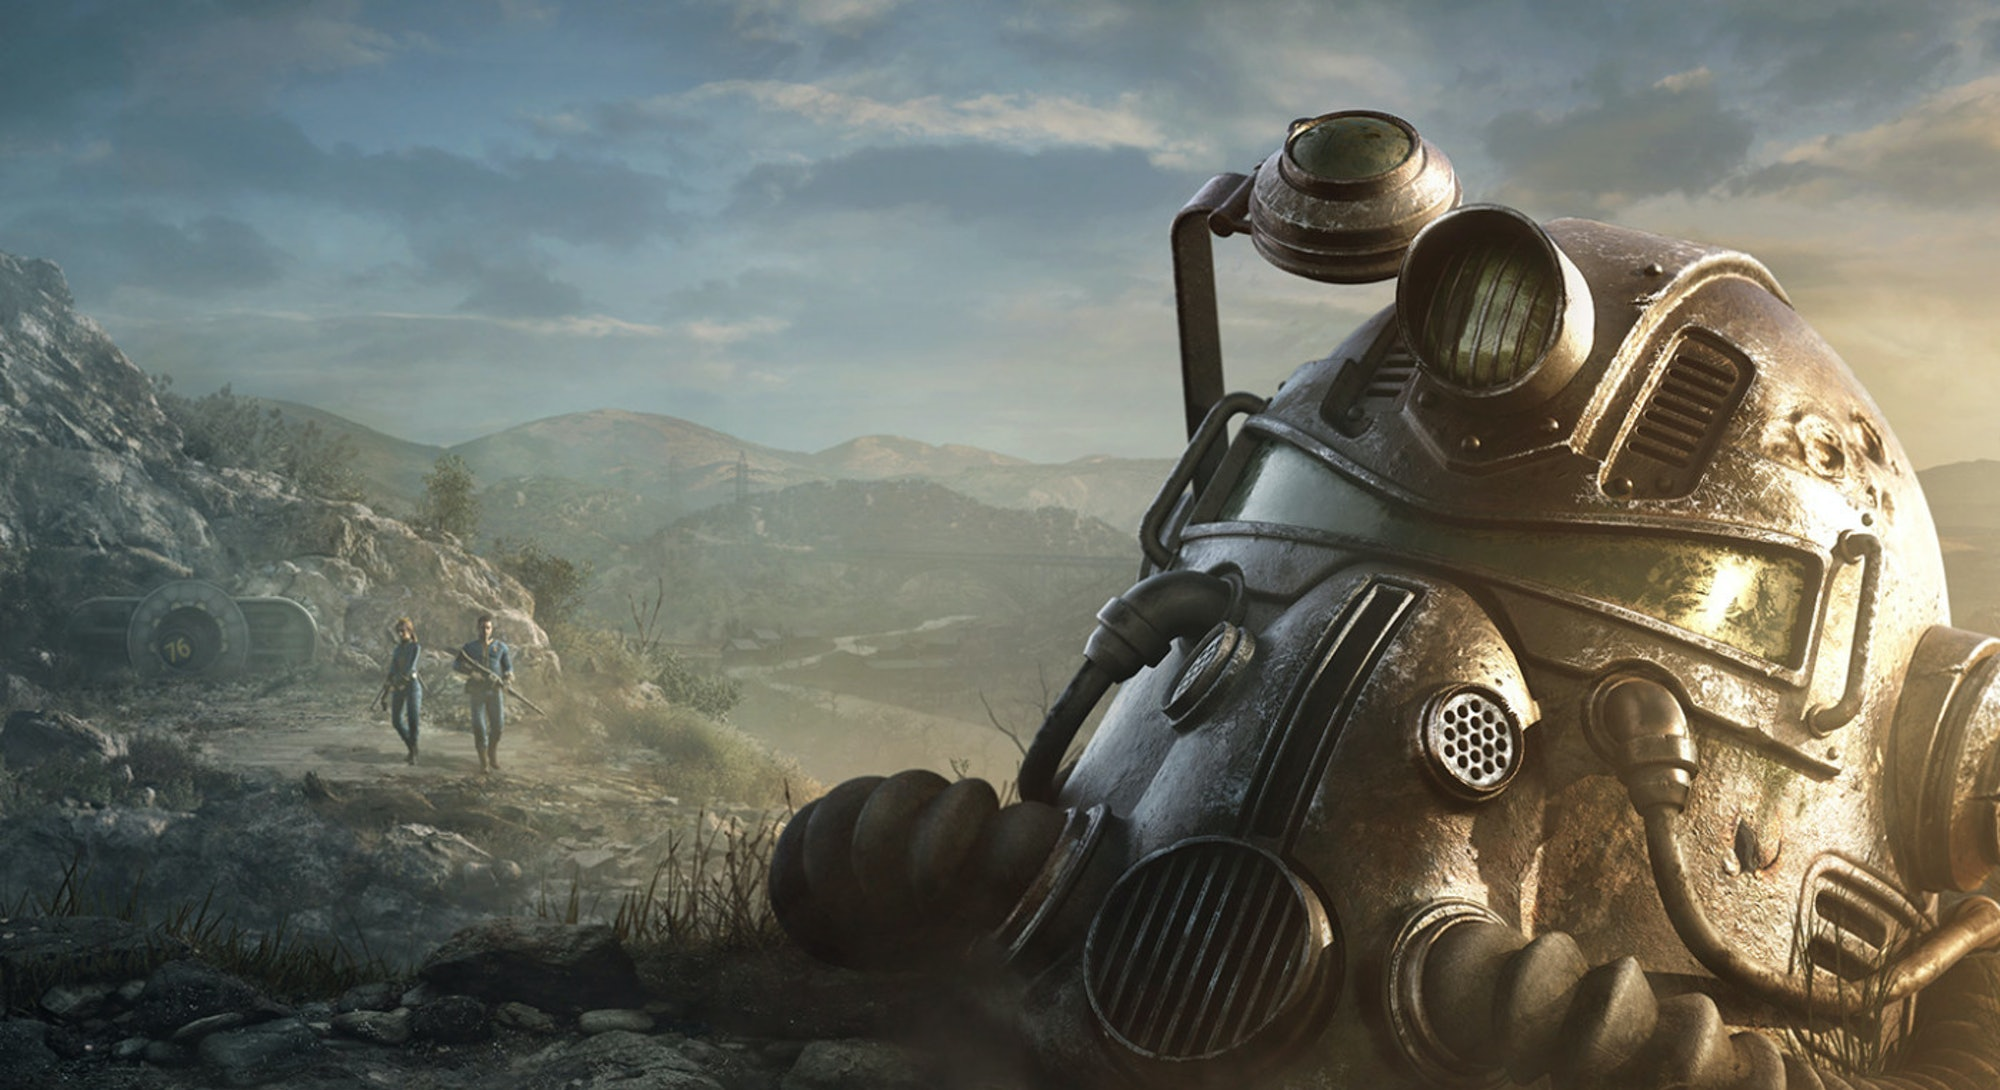 Promotional art for Fallout which is owned by Bethesda.